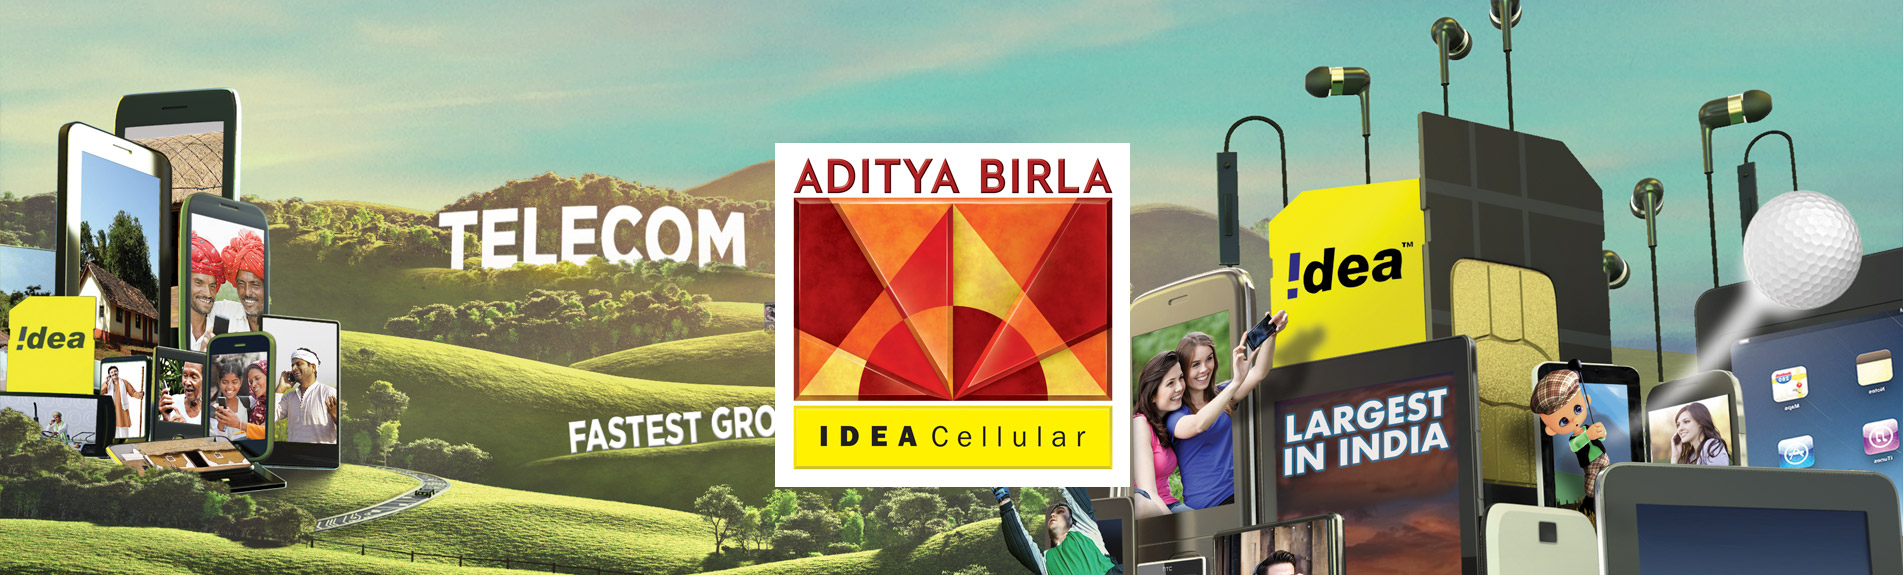 idea cellular l... Idea 3g Logo